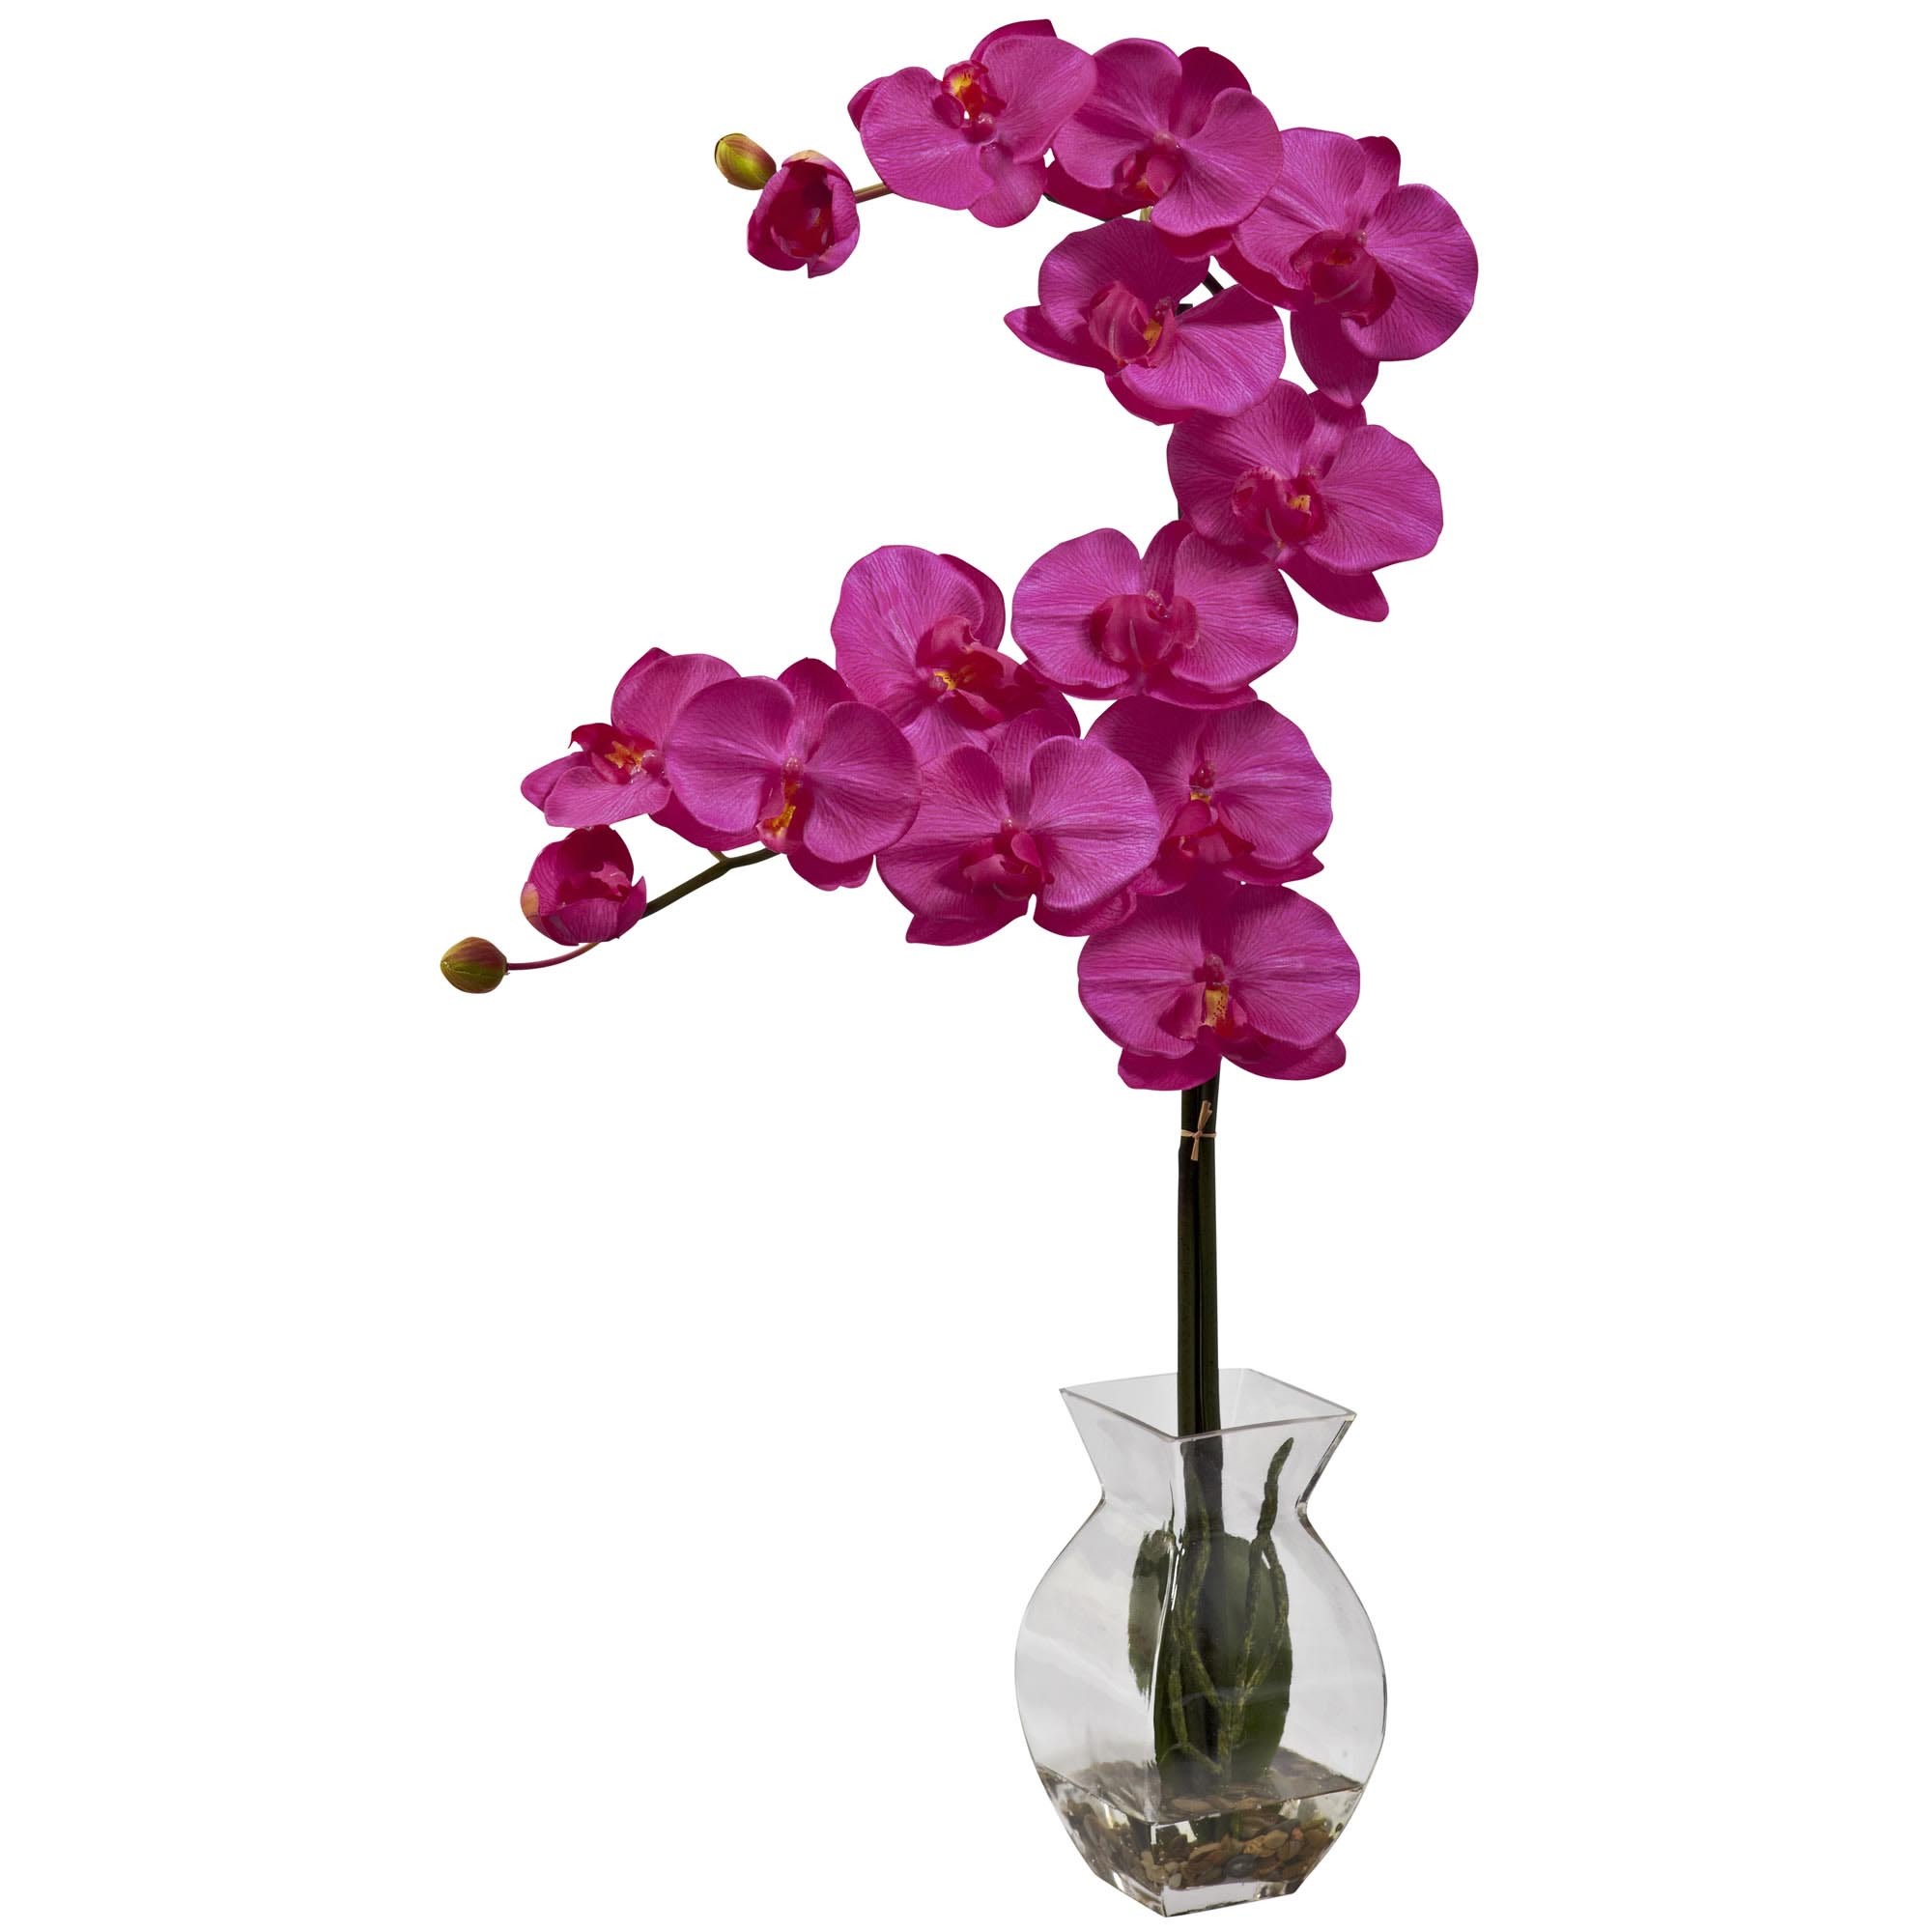 24 inch phalaenopsis orchid arrangement in vase 1295 closeup image reviewsmspy